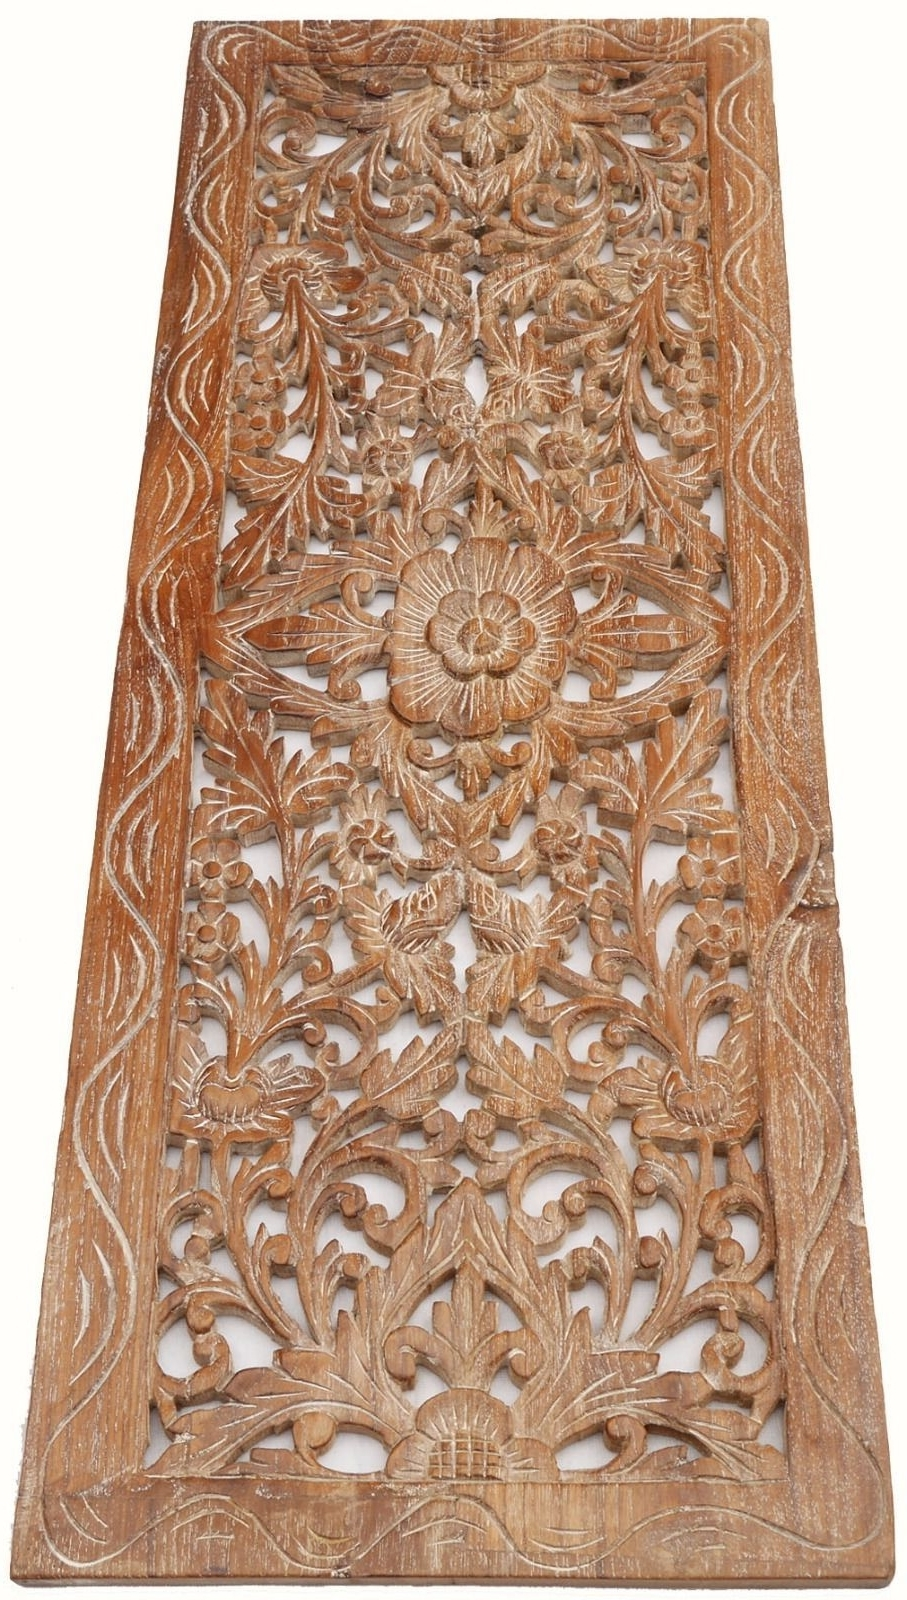 Asian Carved Wood Wall Decor Panel. Floral Wood Wall Art (View 2 of 15)